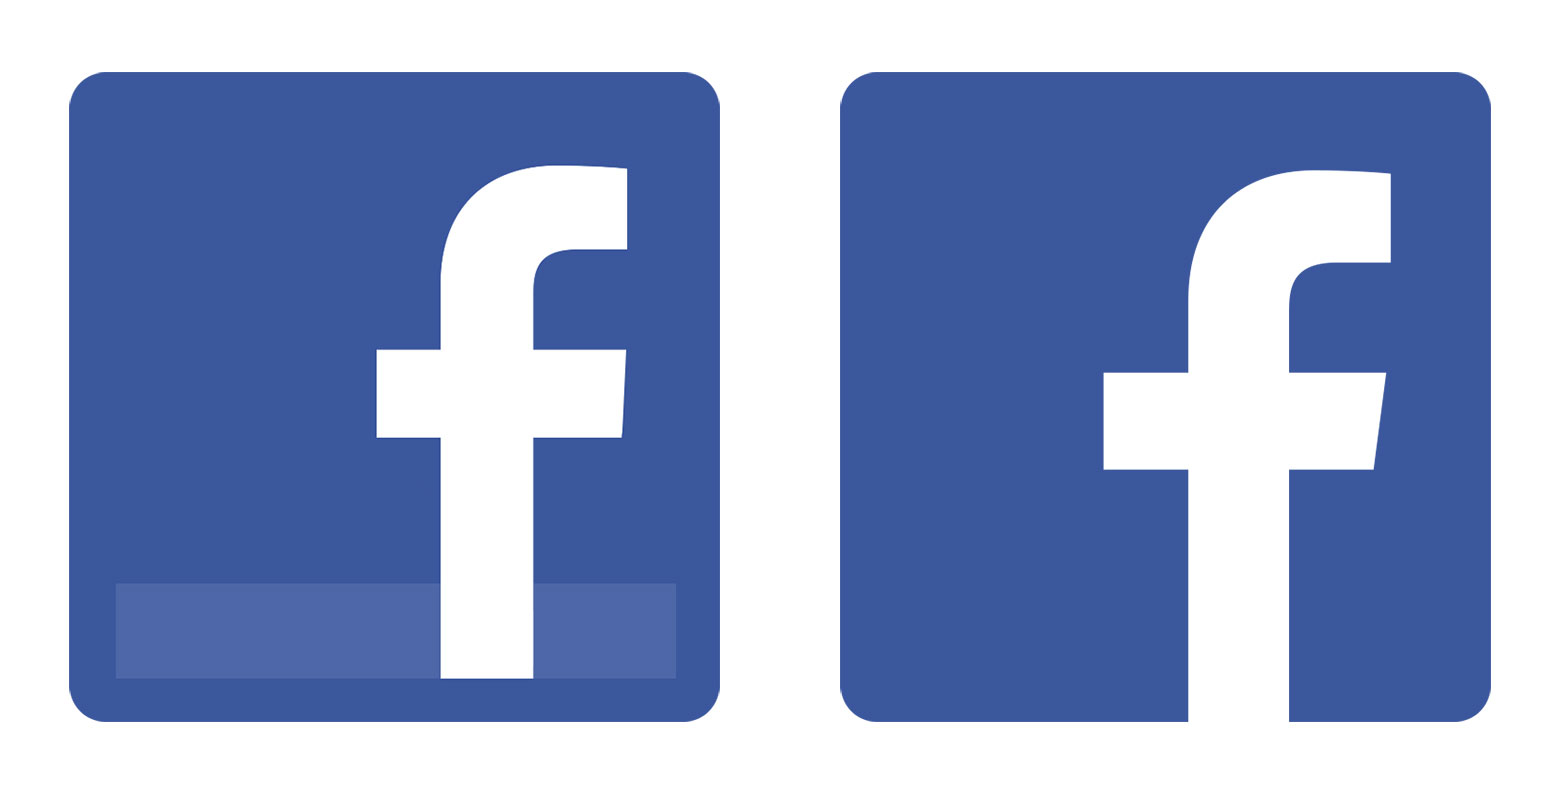 Fb logo icon clipart jpg royalty free library For Facebook Clipart | Free download best For Facebook Clipart on ... jpg royalty free library